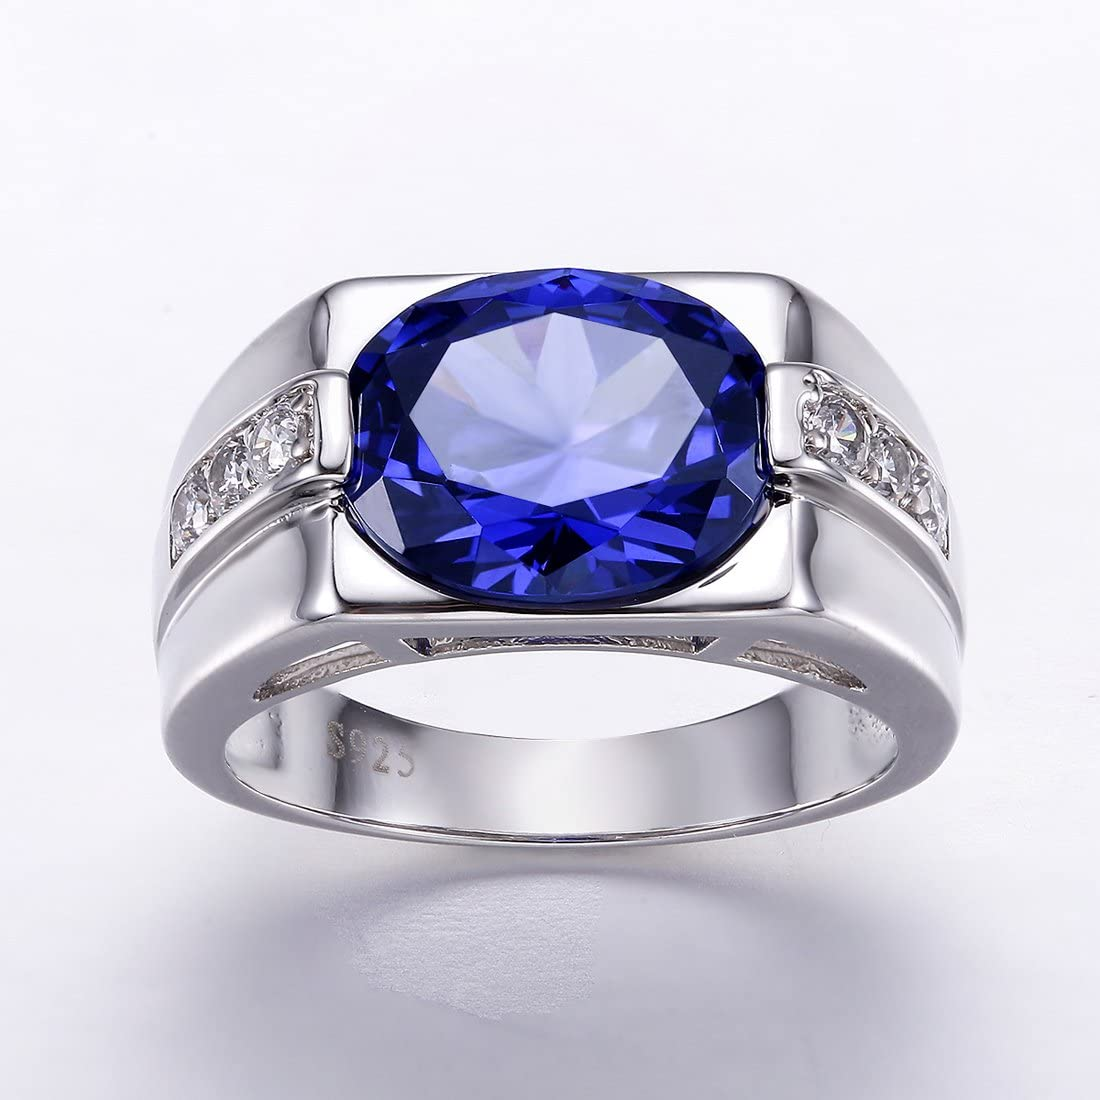 Auzeuner Women Statement Lab-Created Tanzanite 925 Sterling Silver Cocktail Ring